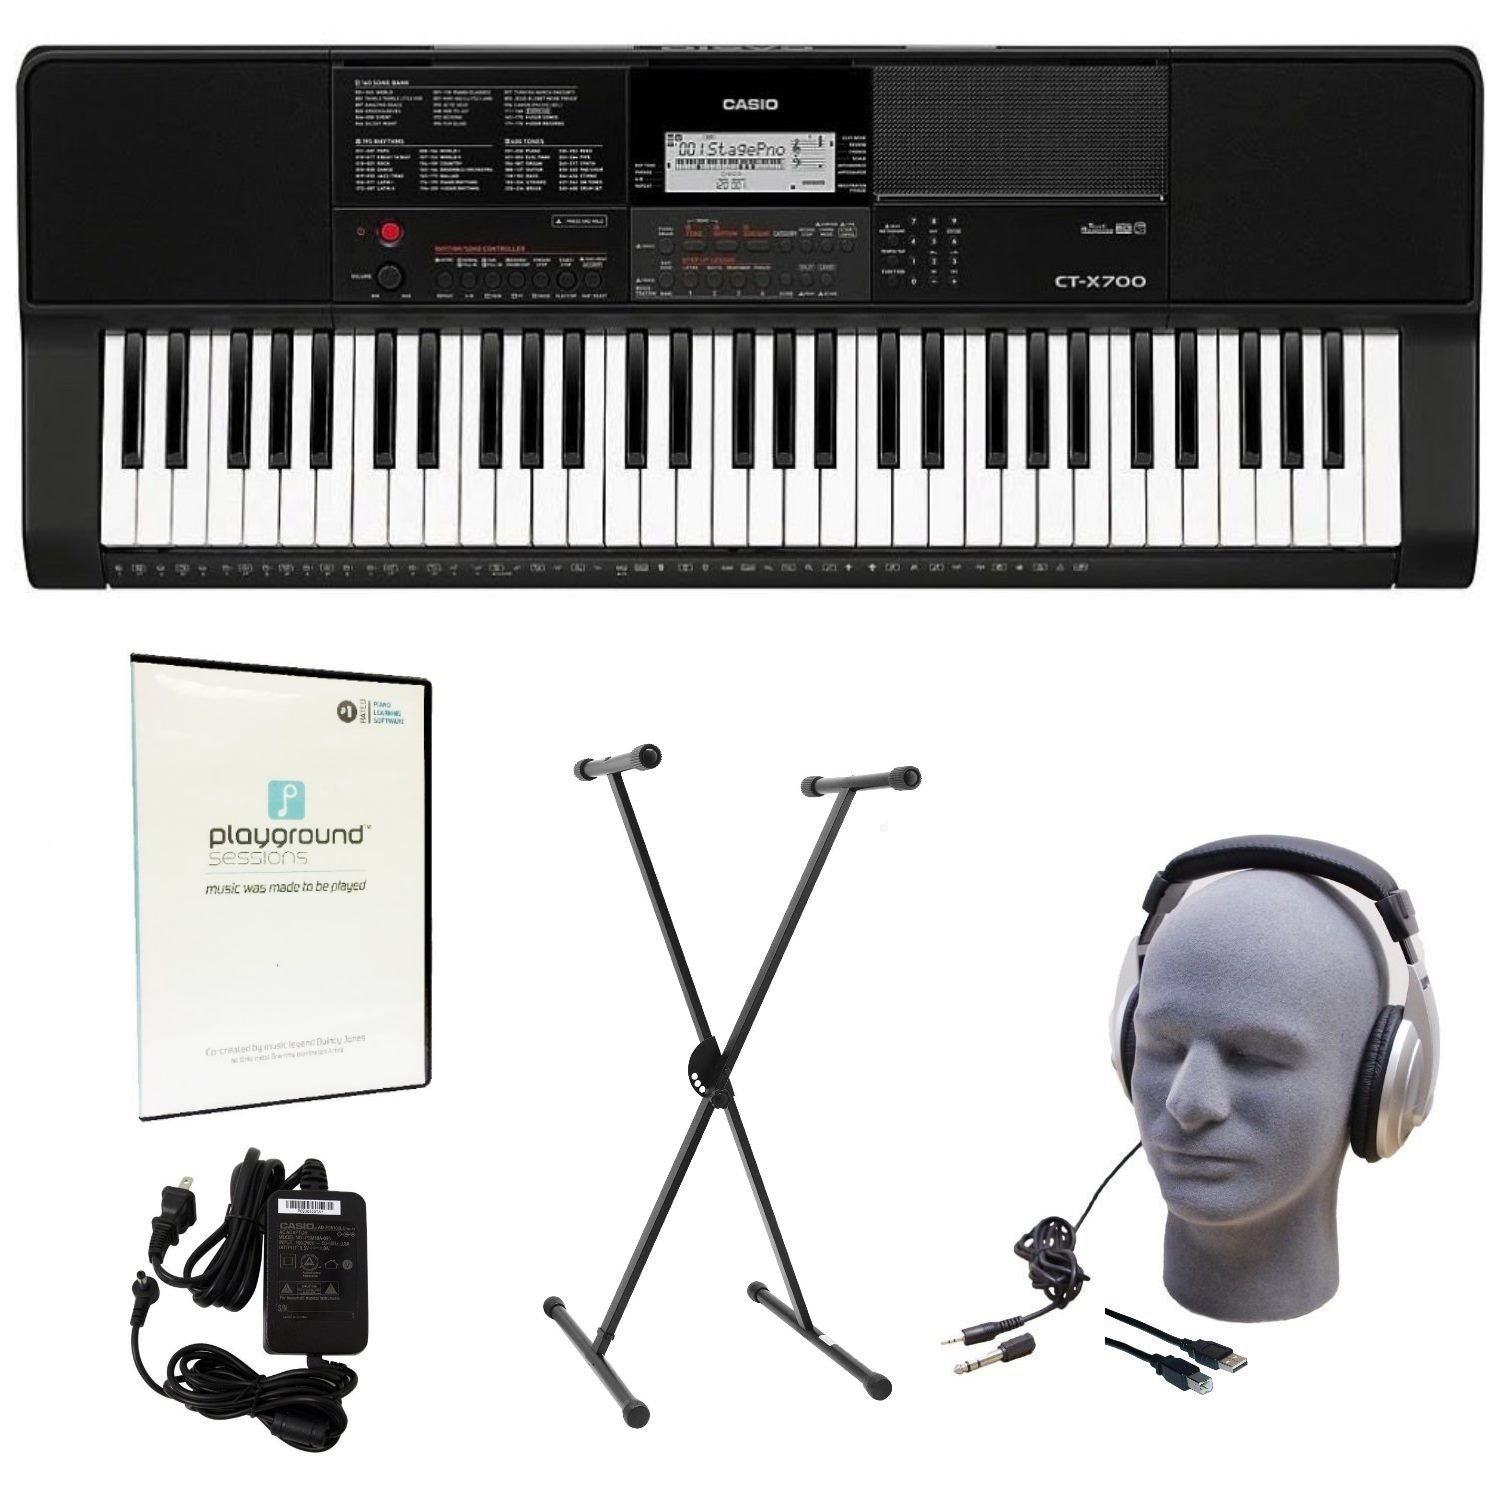 Casio CT-X700 EDP Educational Keyboard Pack with Power Supply, Stand, Headphones, USB Cable, and Instructional Software CAS CTX700 EDP